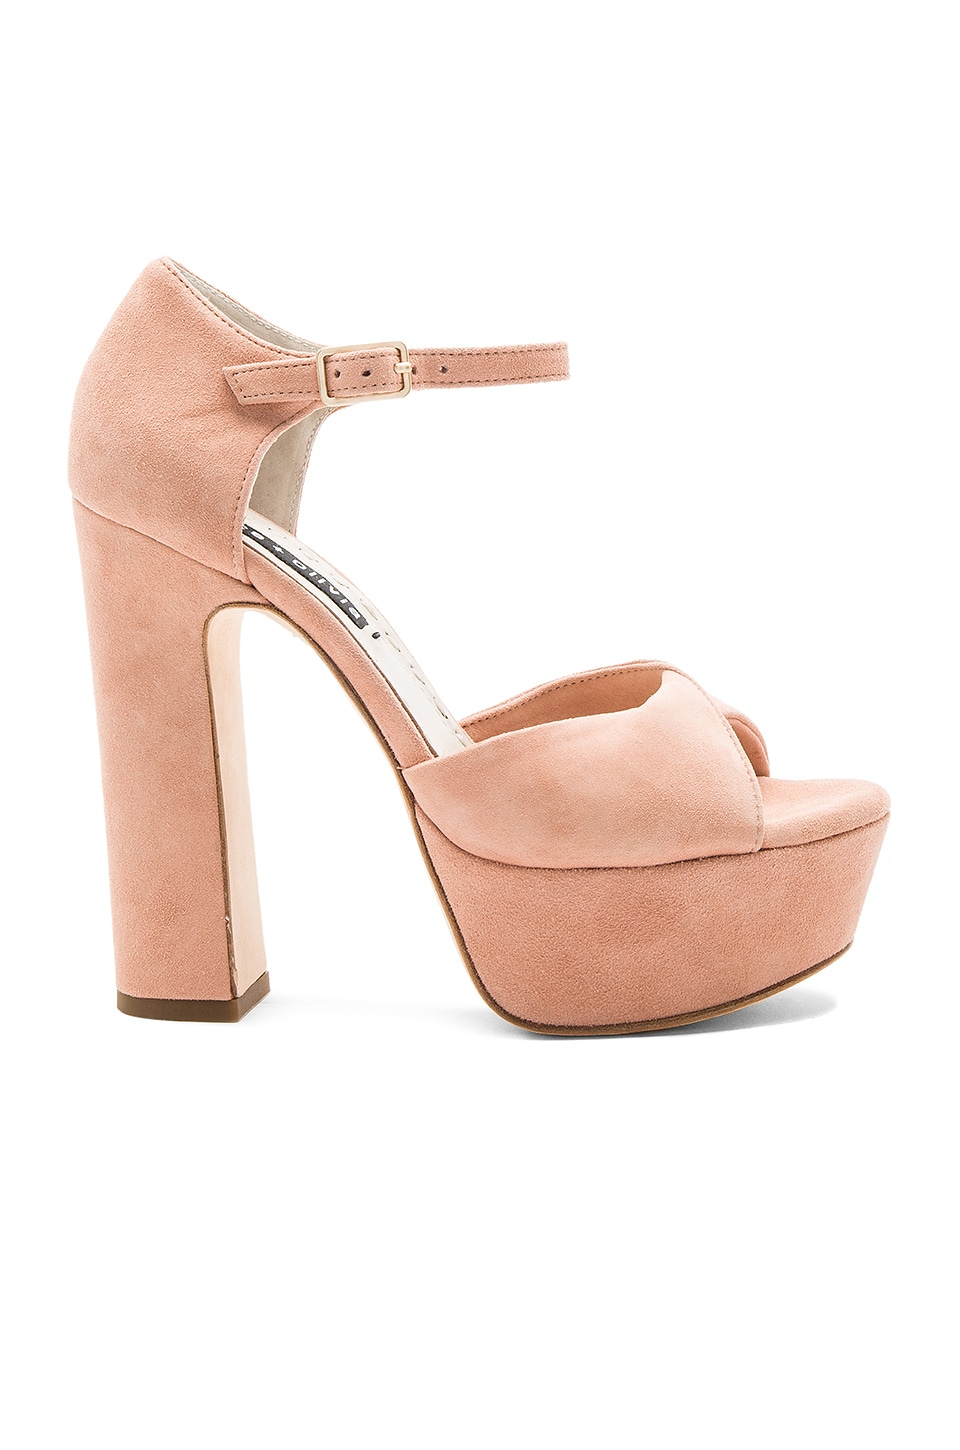 b2b6ac647c70 Alice + Olivia Layla Platform in Dusty Rose